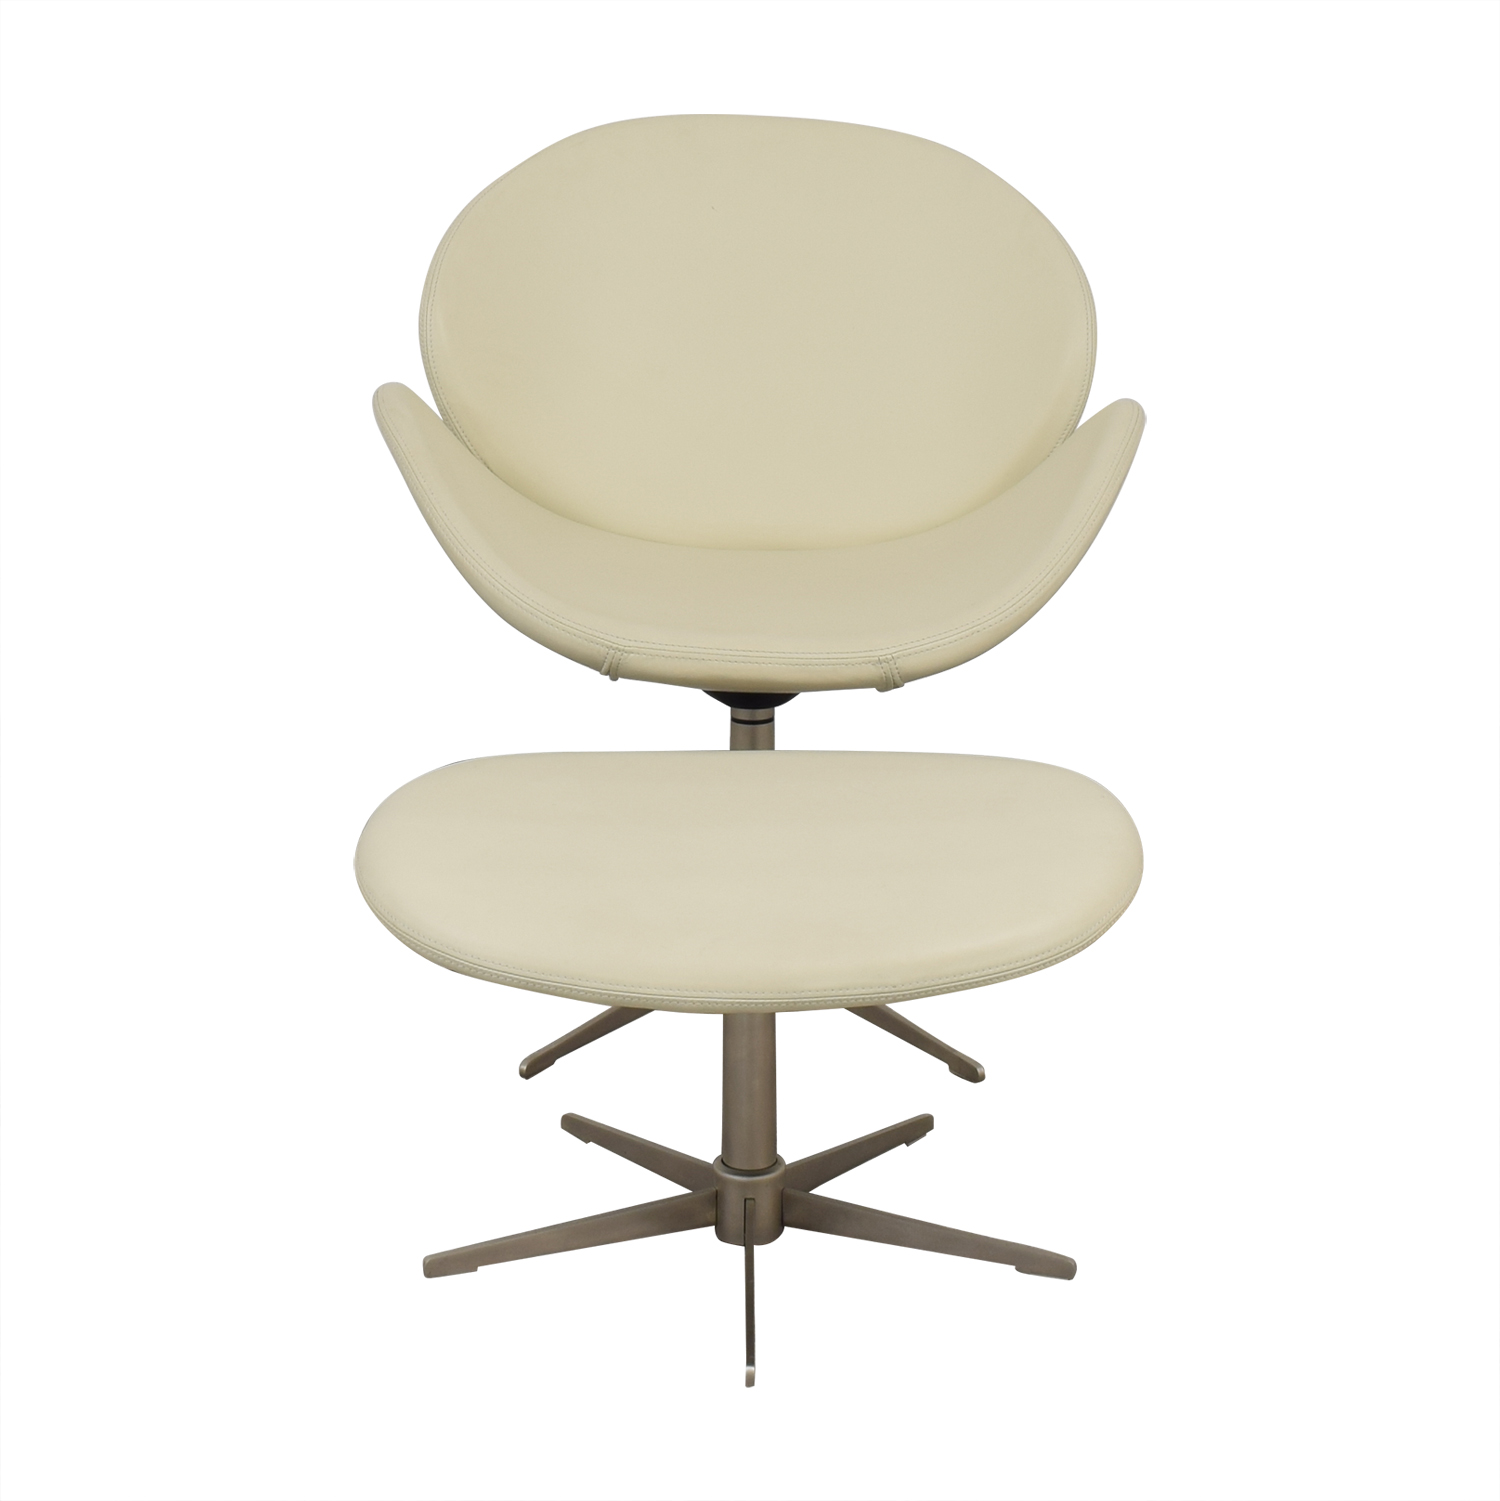 shop BoConcept BoConcept OGI Chair with Footstool online